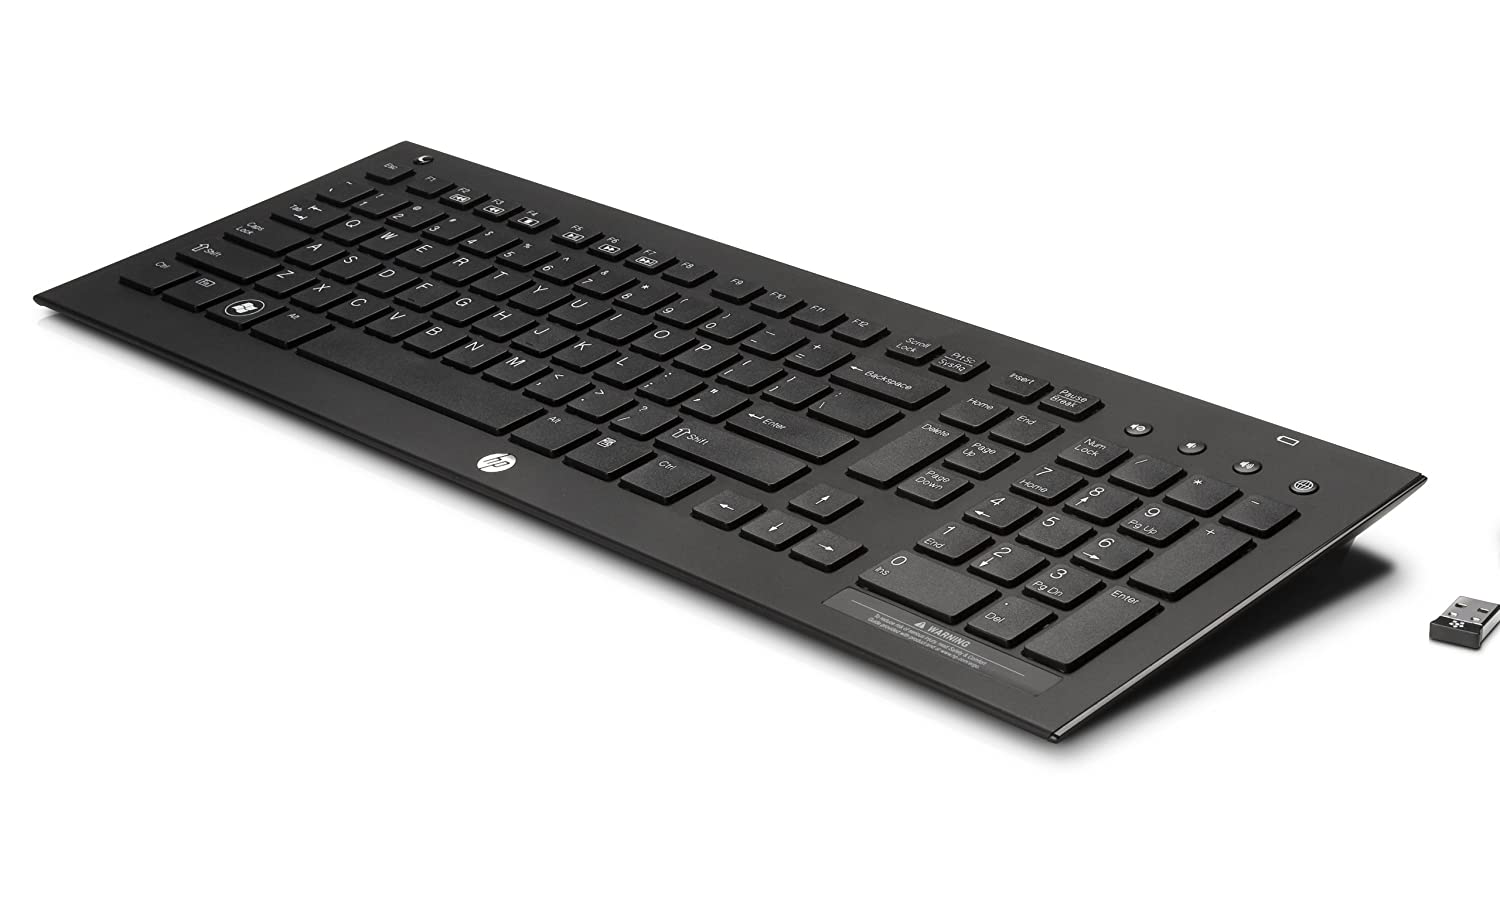 Hp Wireless Elite V2 Keyboard (Qb467aa) - Specifications and Warranty Hewlett Packard QB467AA#ABA